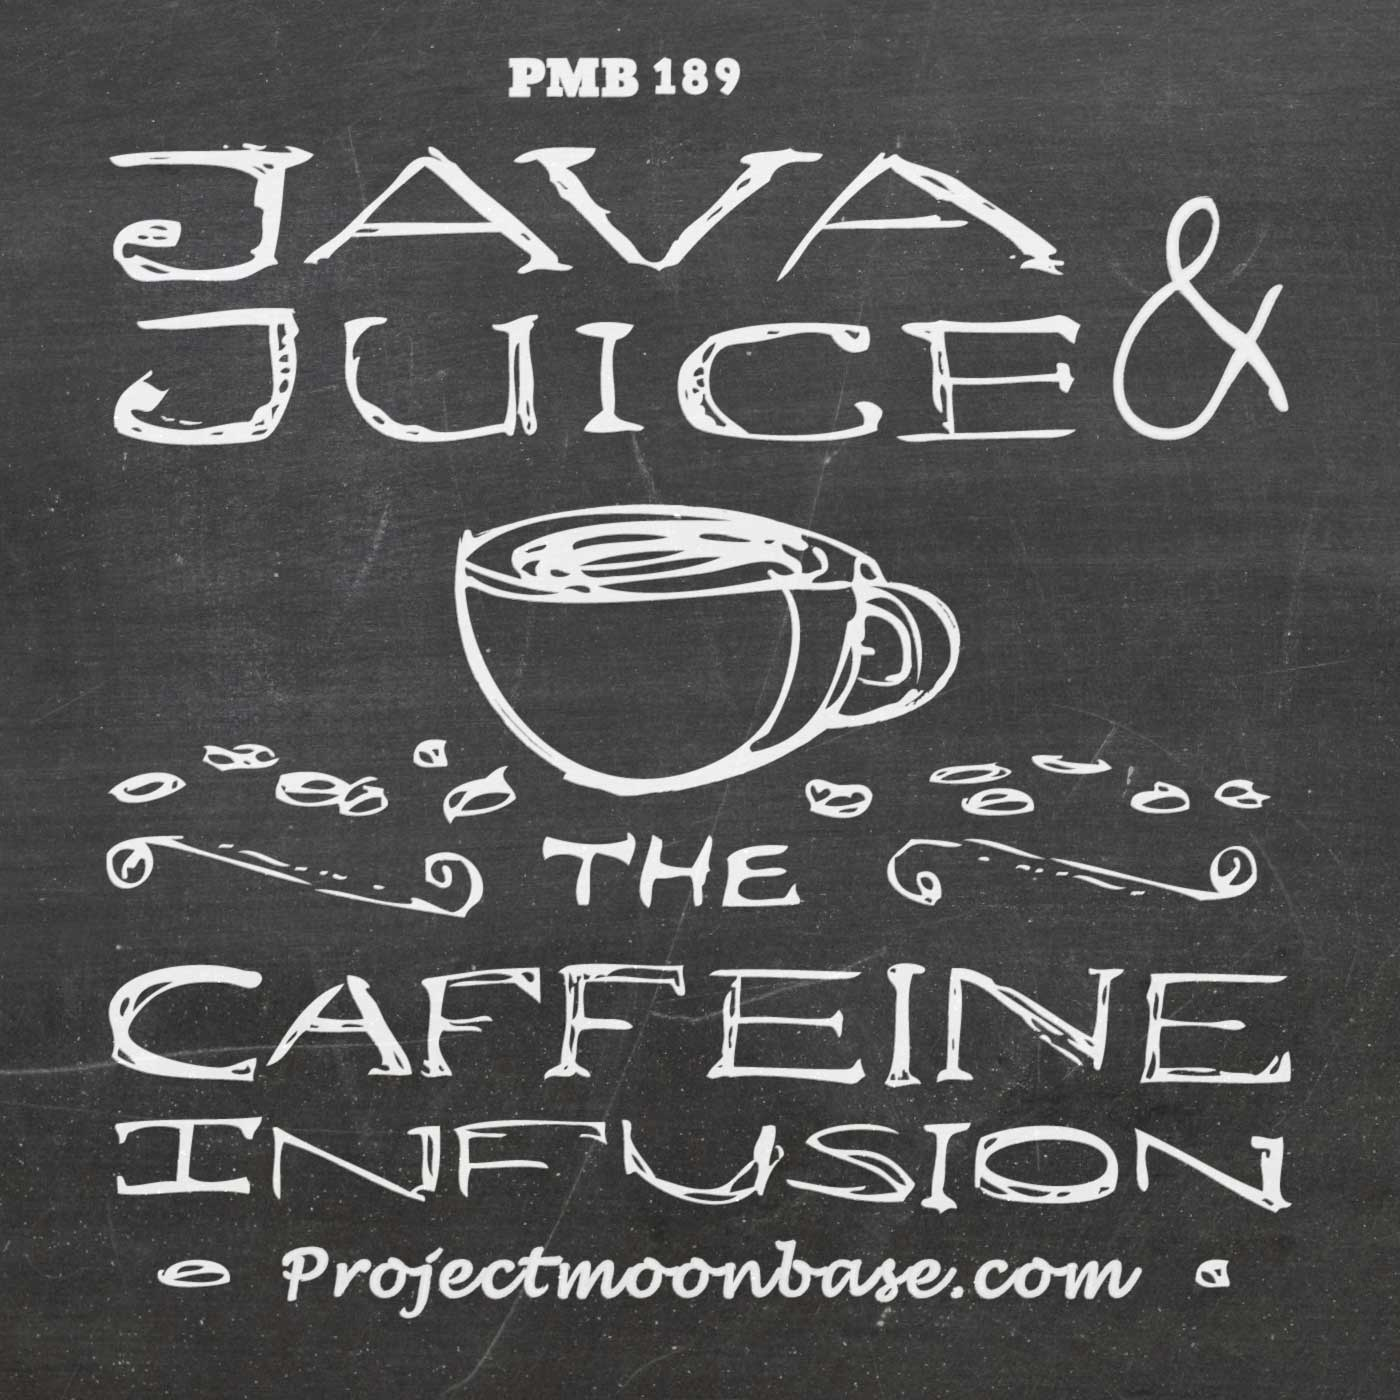 PMB189: Java Juice and the Caffeine Infusion